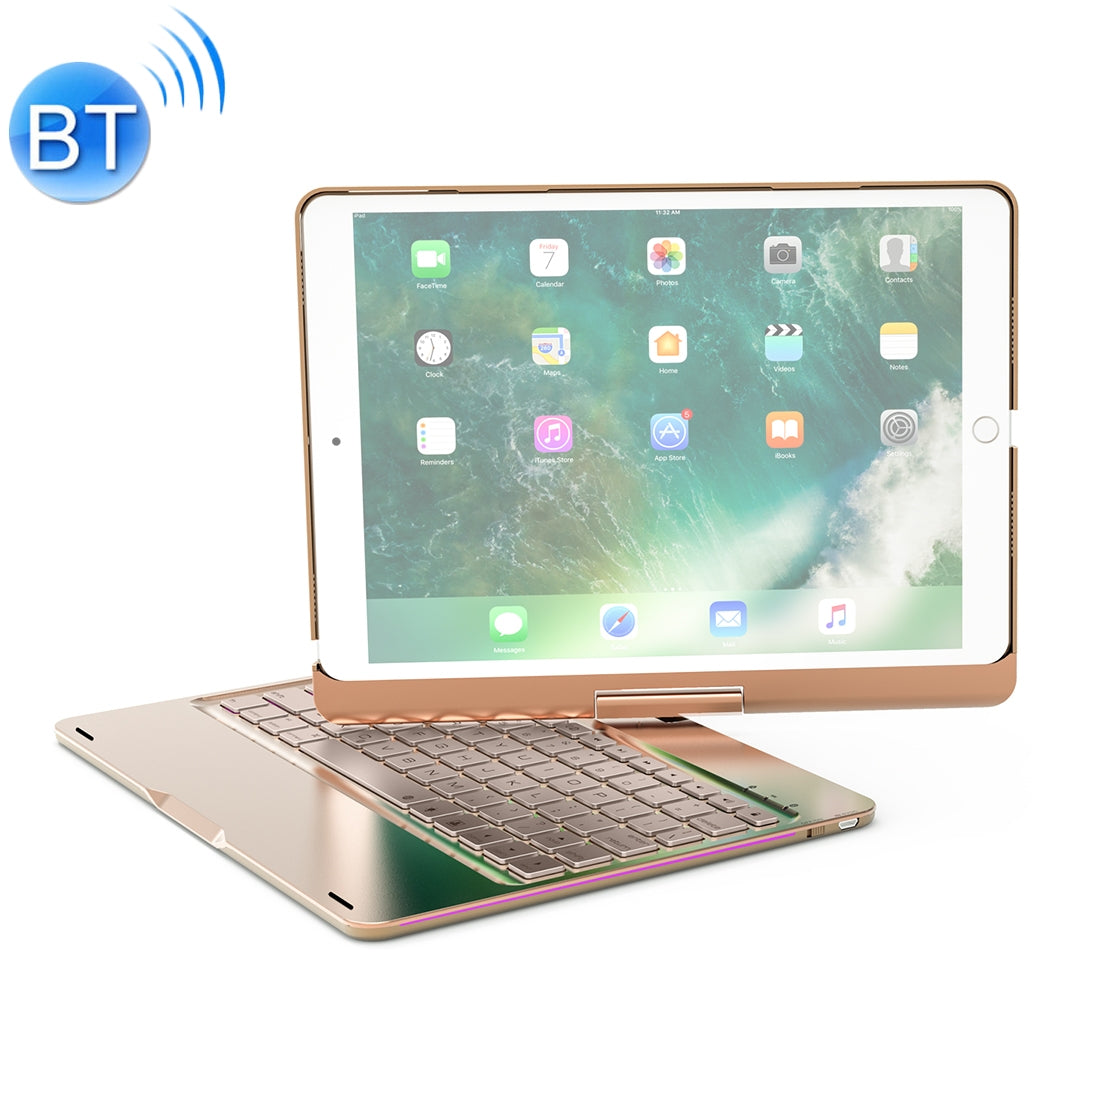 F360 For iPad Pro 10.5 inch & iPad Air 10.5 inch Rotatable Colorful Backlight Laptop Version Aluminum Alloy Bluetooth Keyboard Protective Cover (Gold)